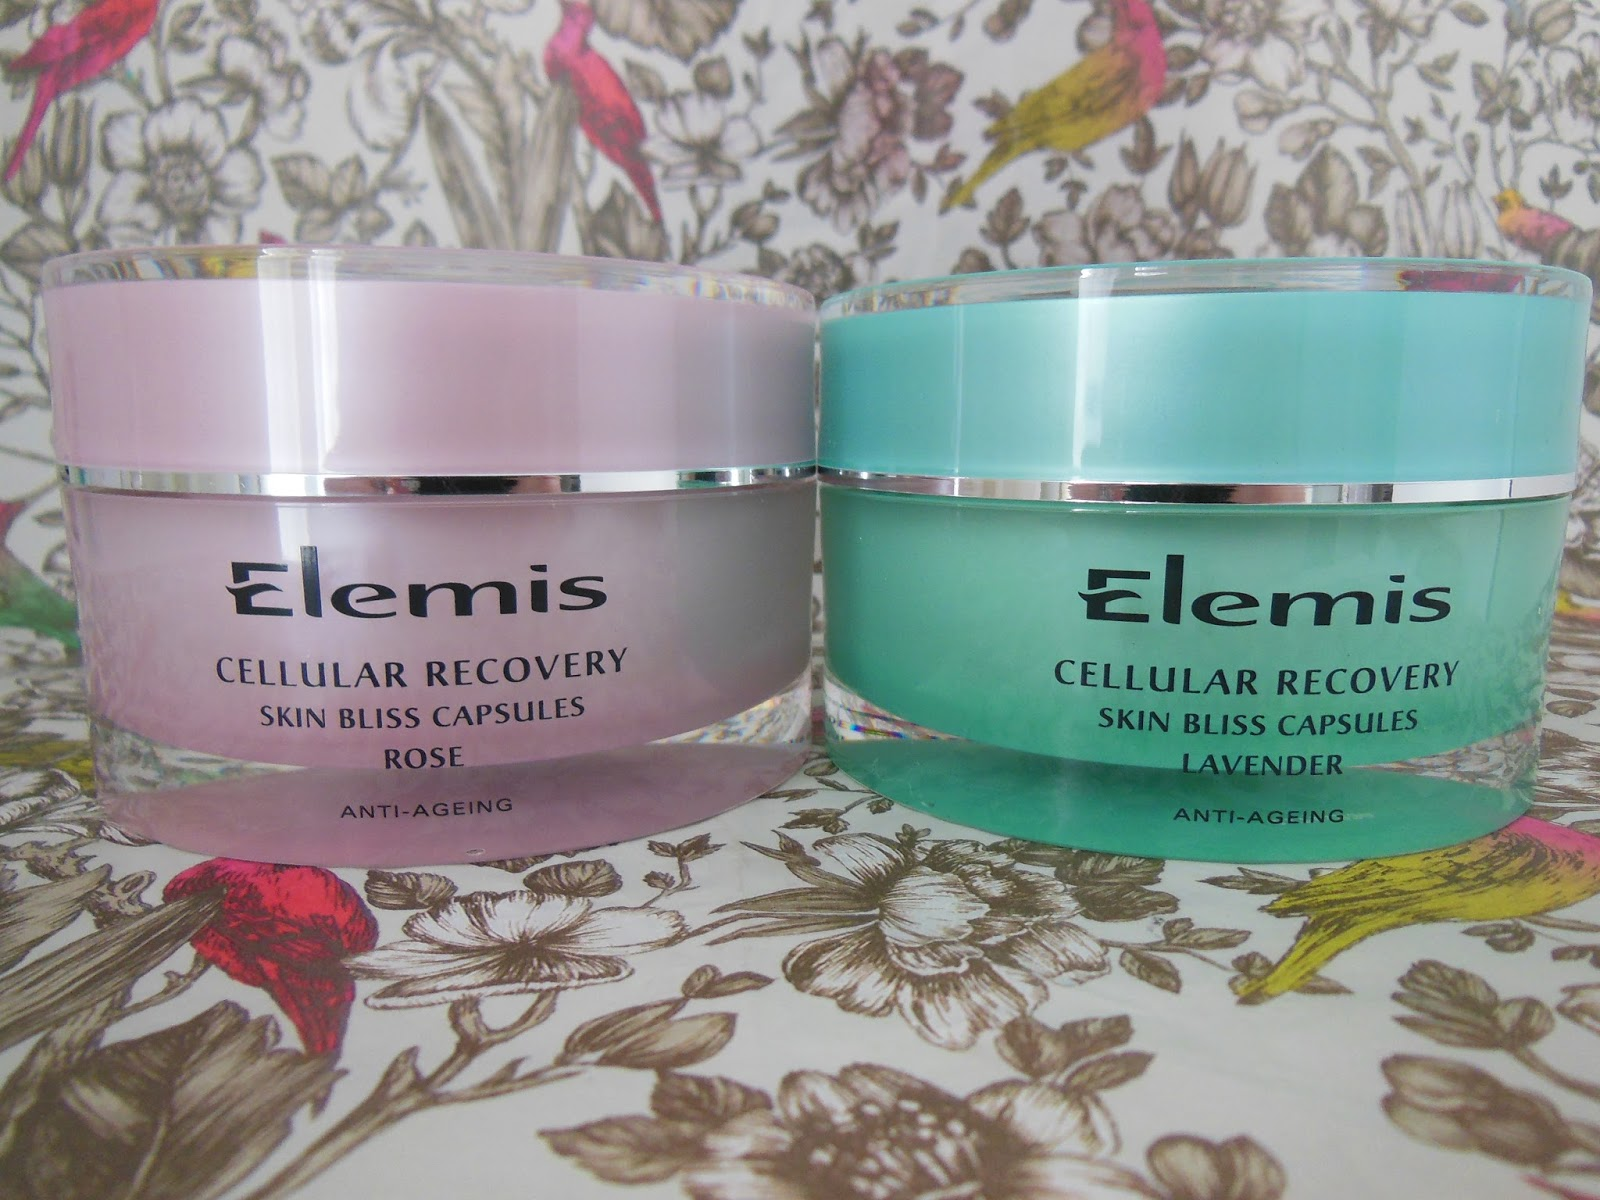 Elemis Cellular Recovery skin bliss capsule set